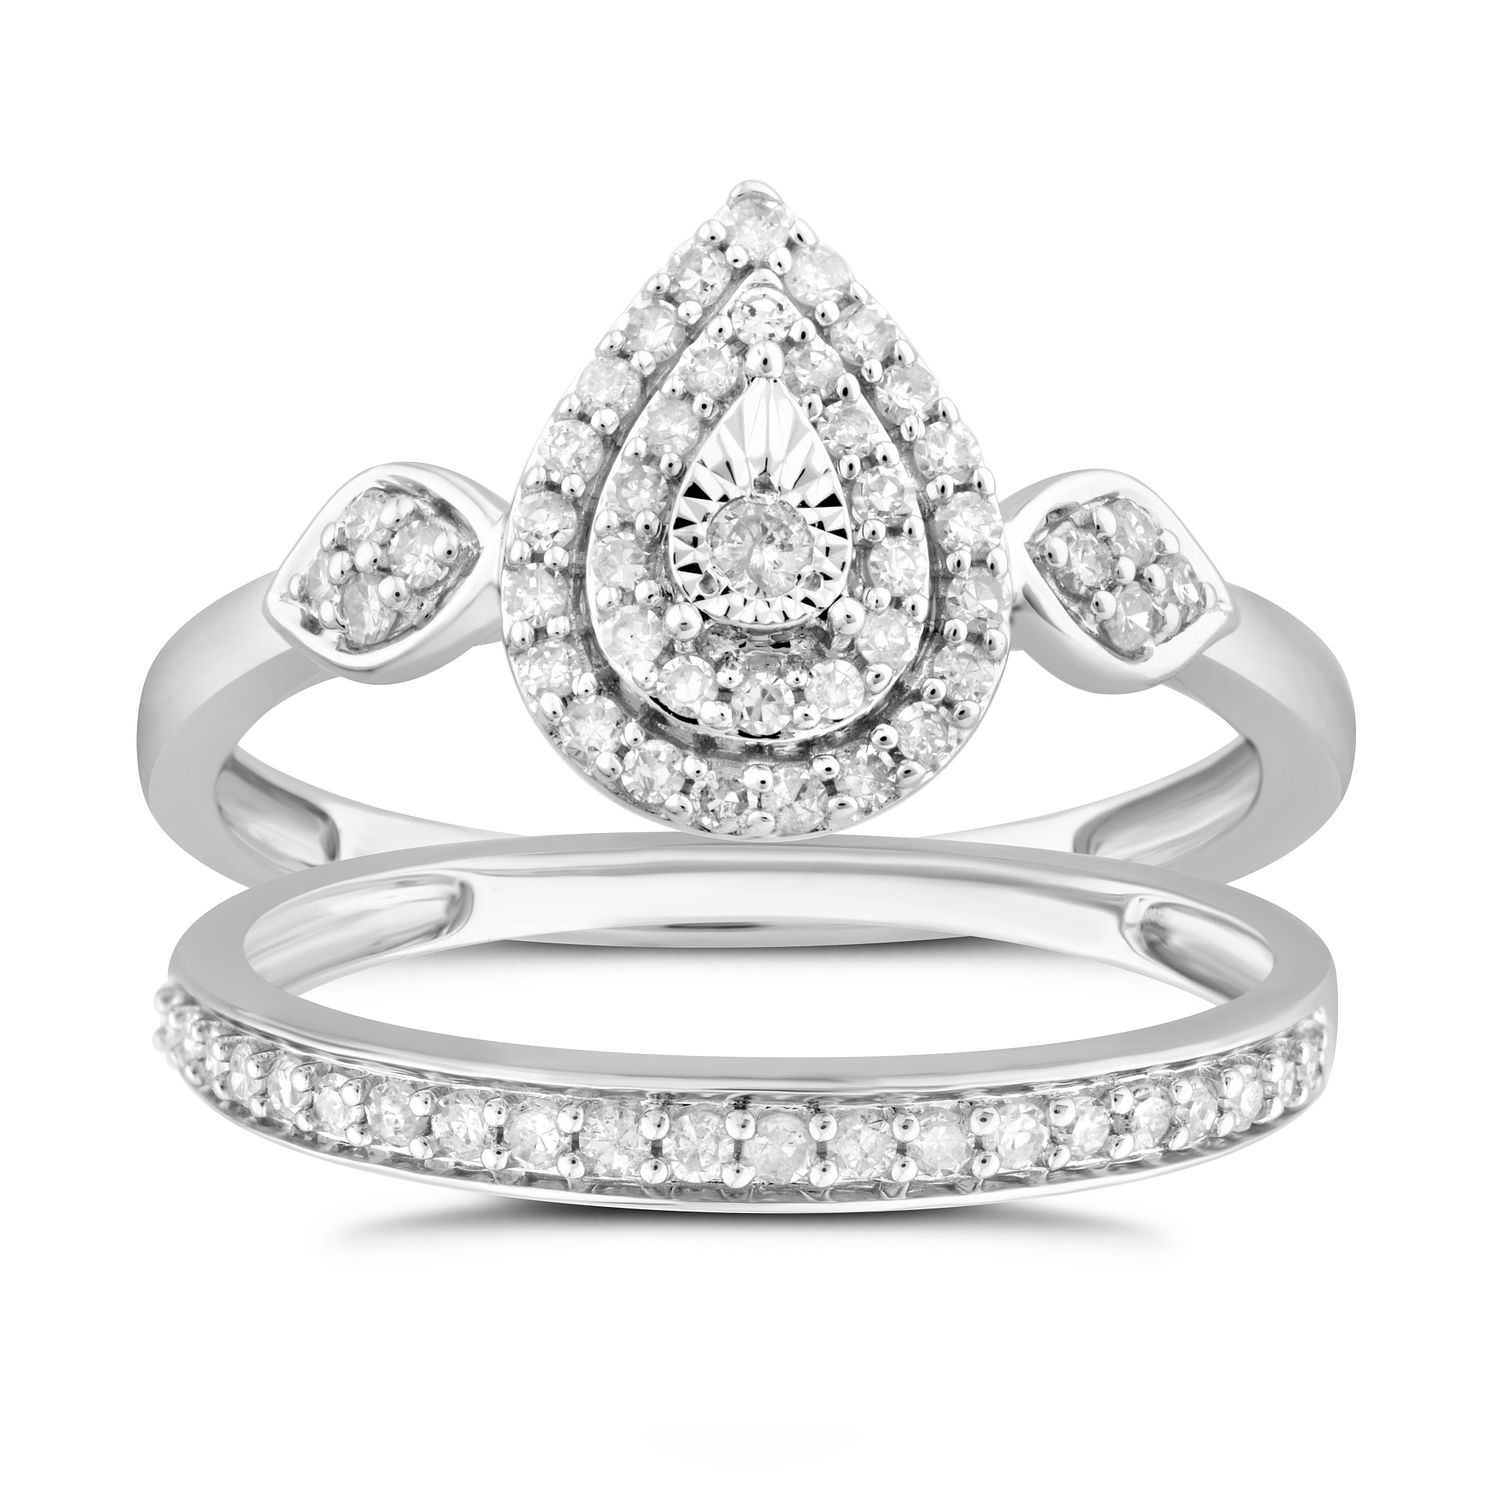 Perfect Fit 9ct White Gold 1/3ct Diamond Pear Ring Set - Product number 4890825